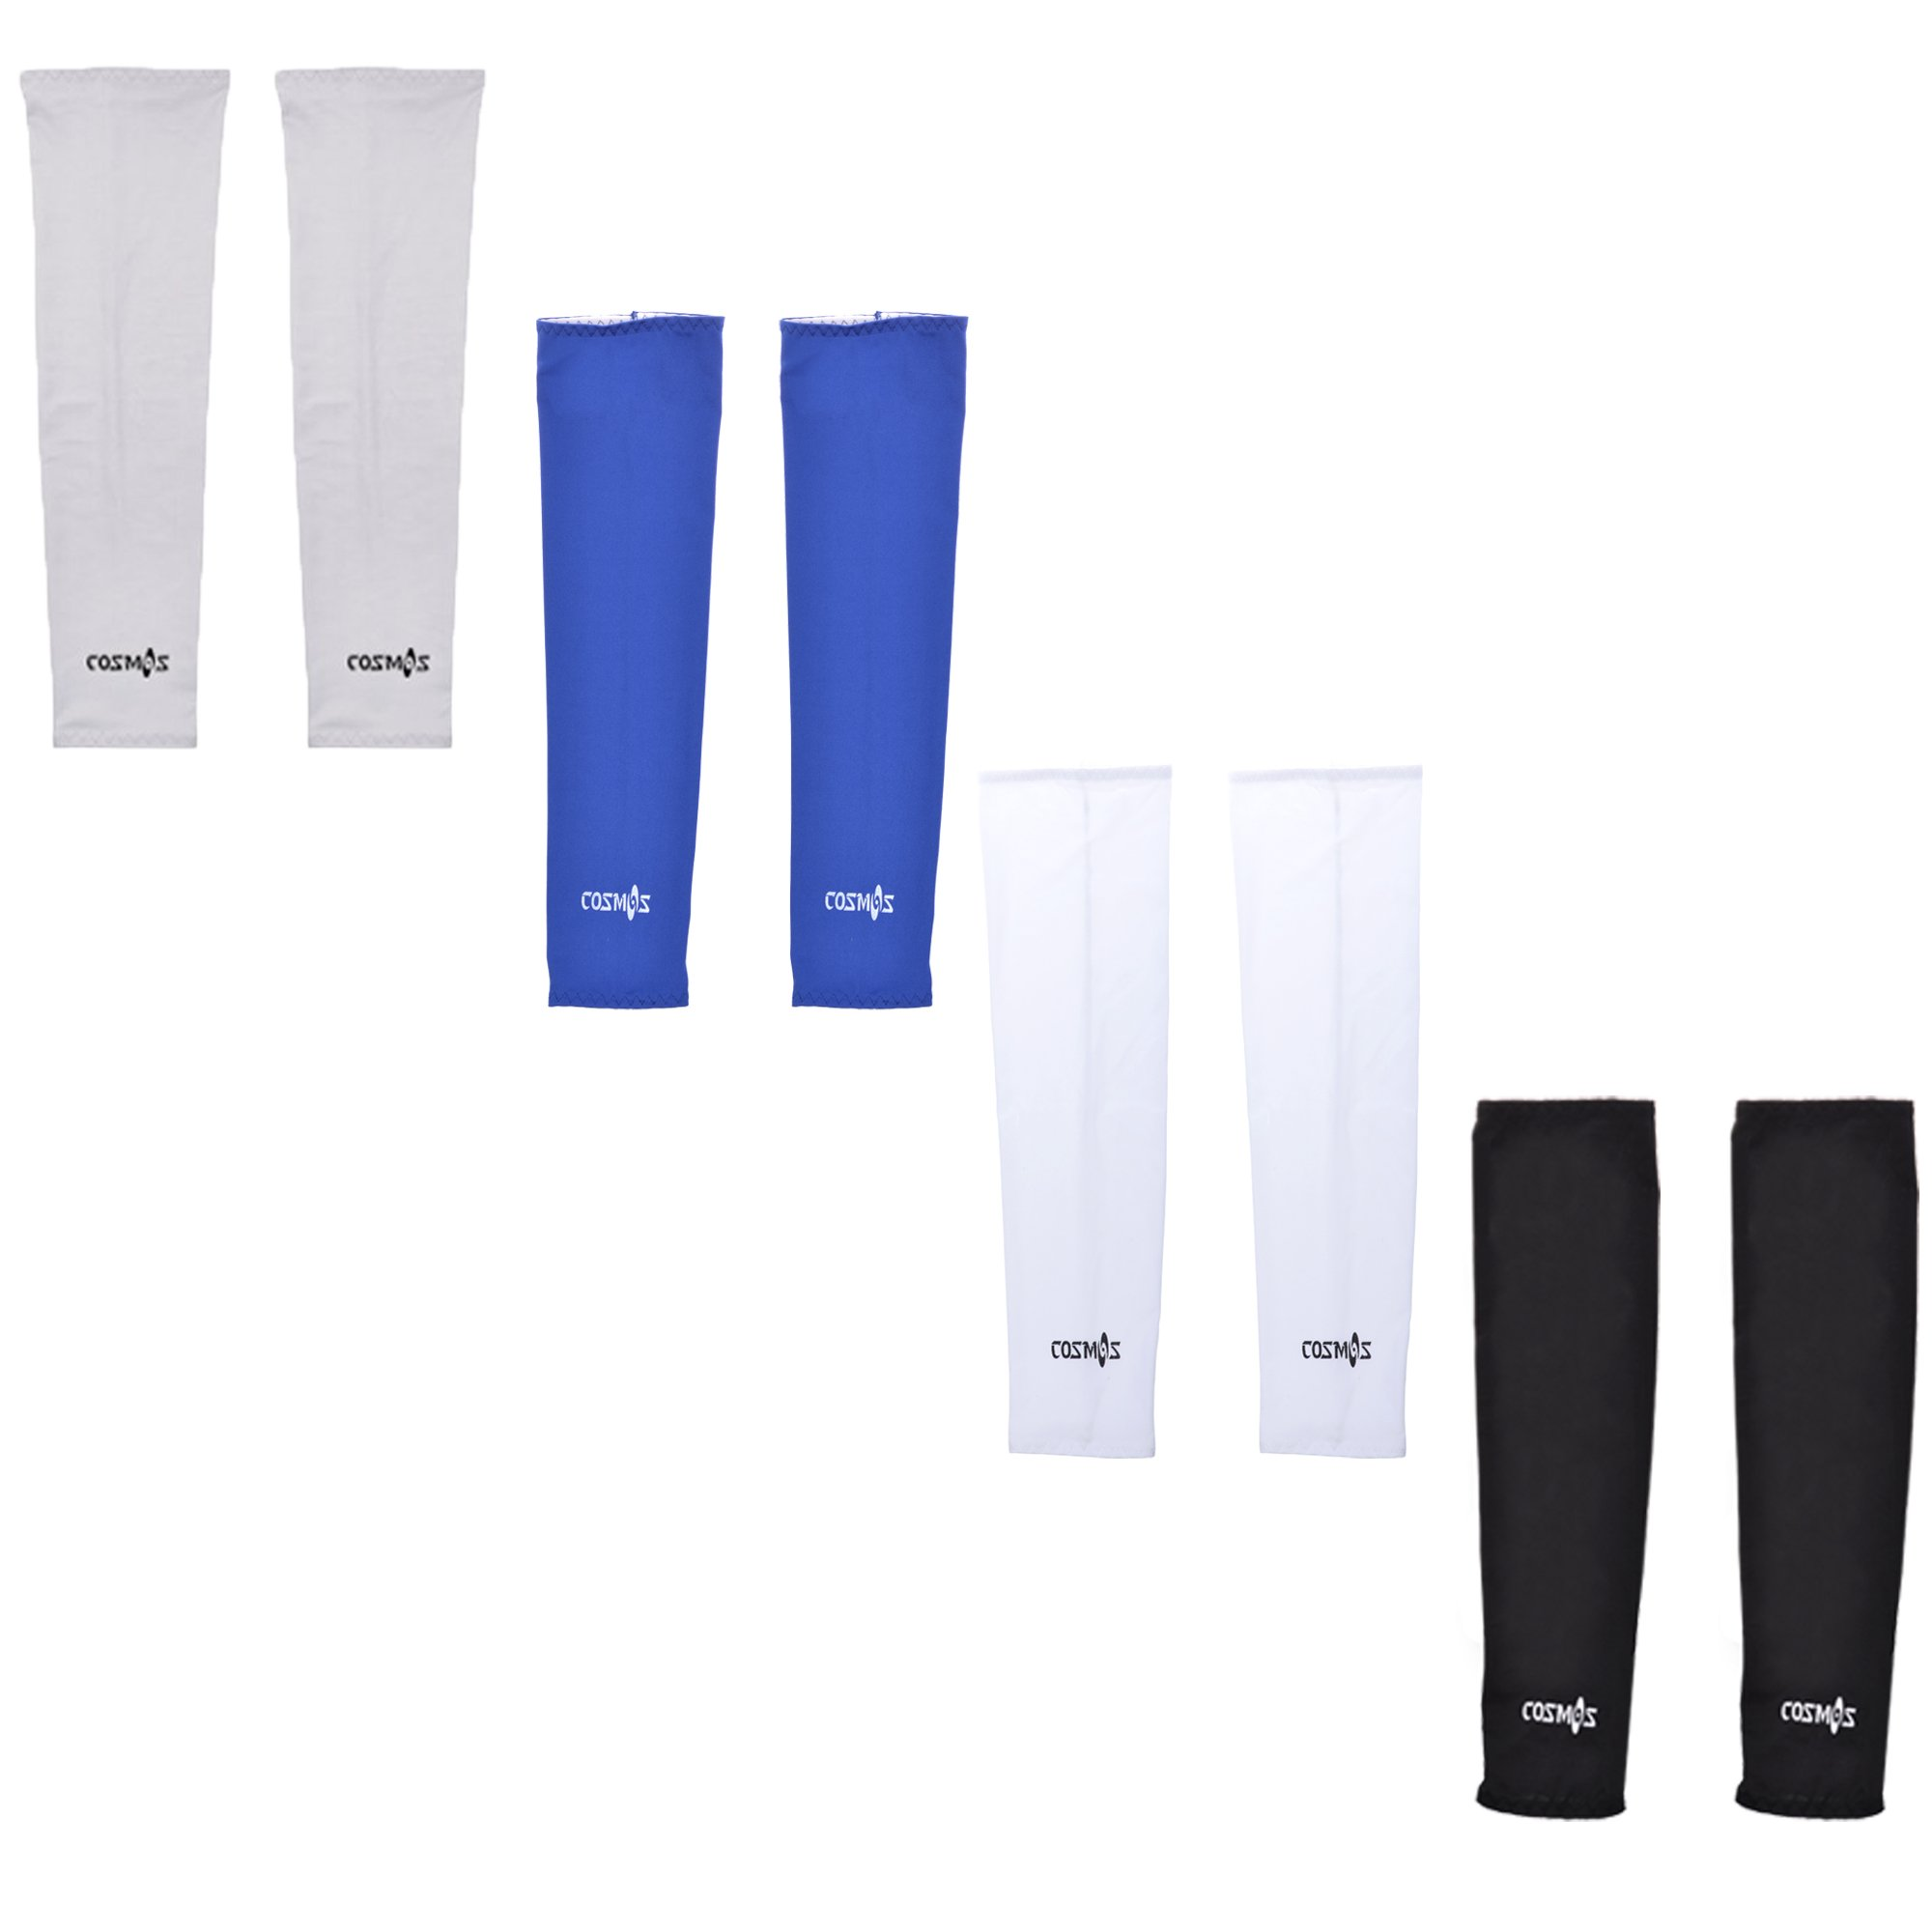 Cosmos 4 Pairs Different Color UV Protection Cooler Arm Sleeves for Bike Cycling Hiking Golf